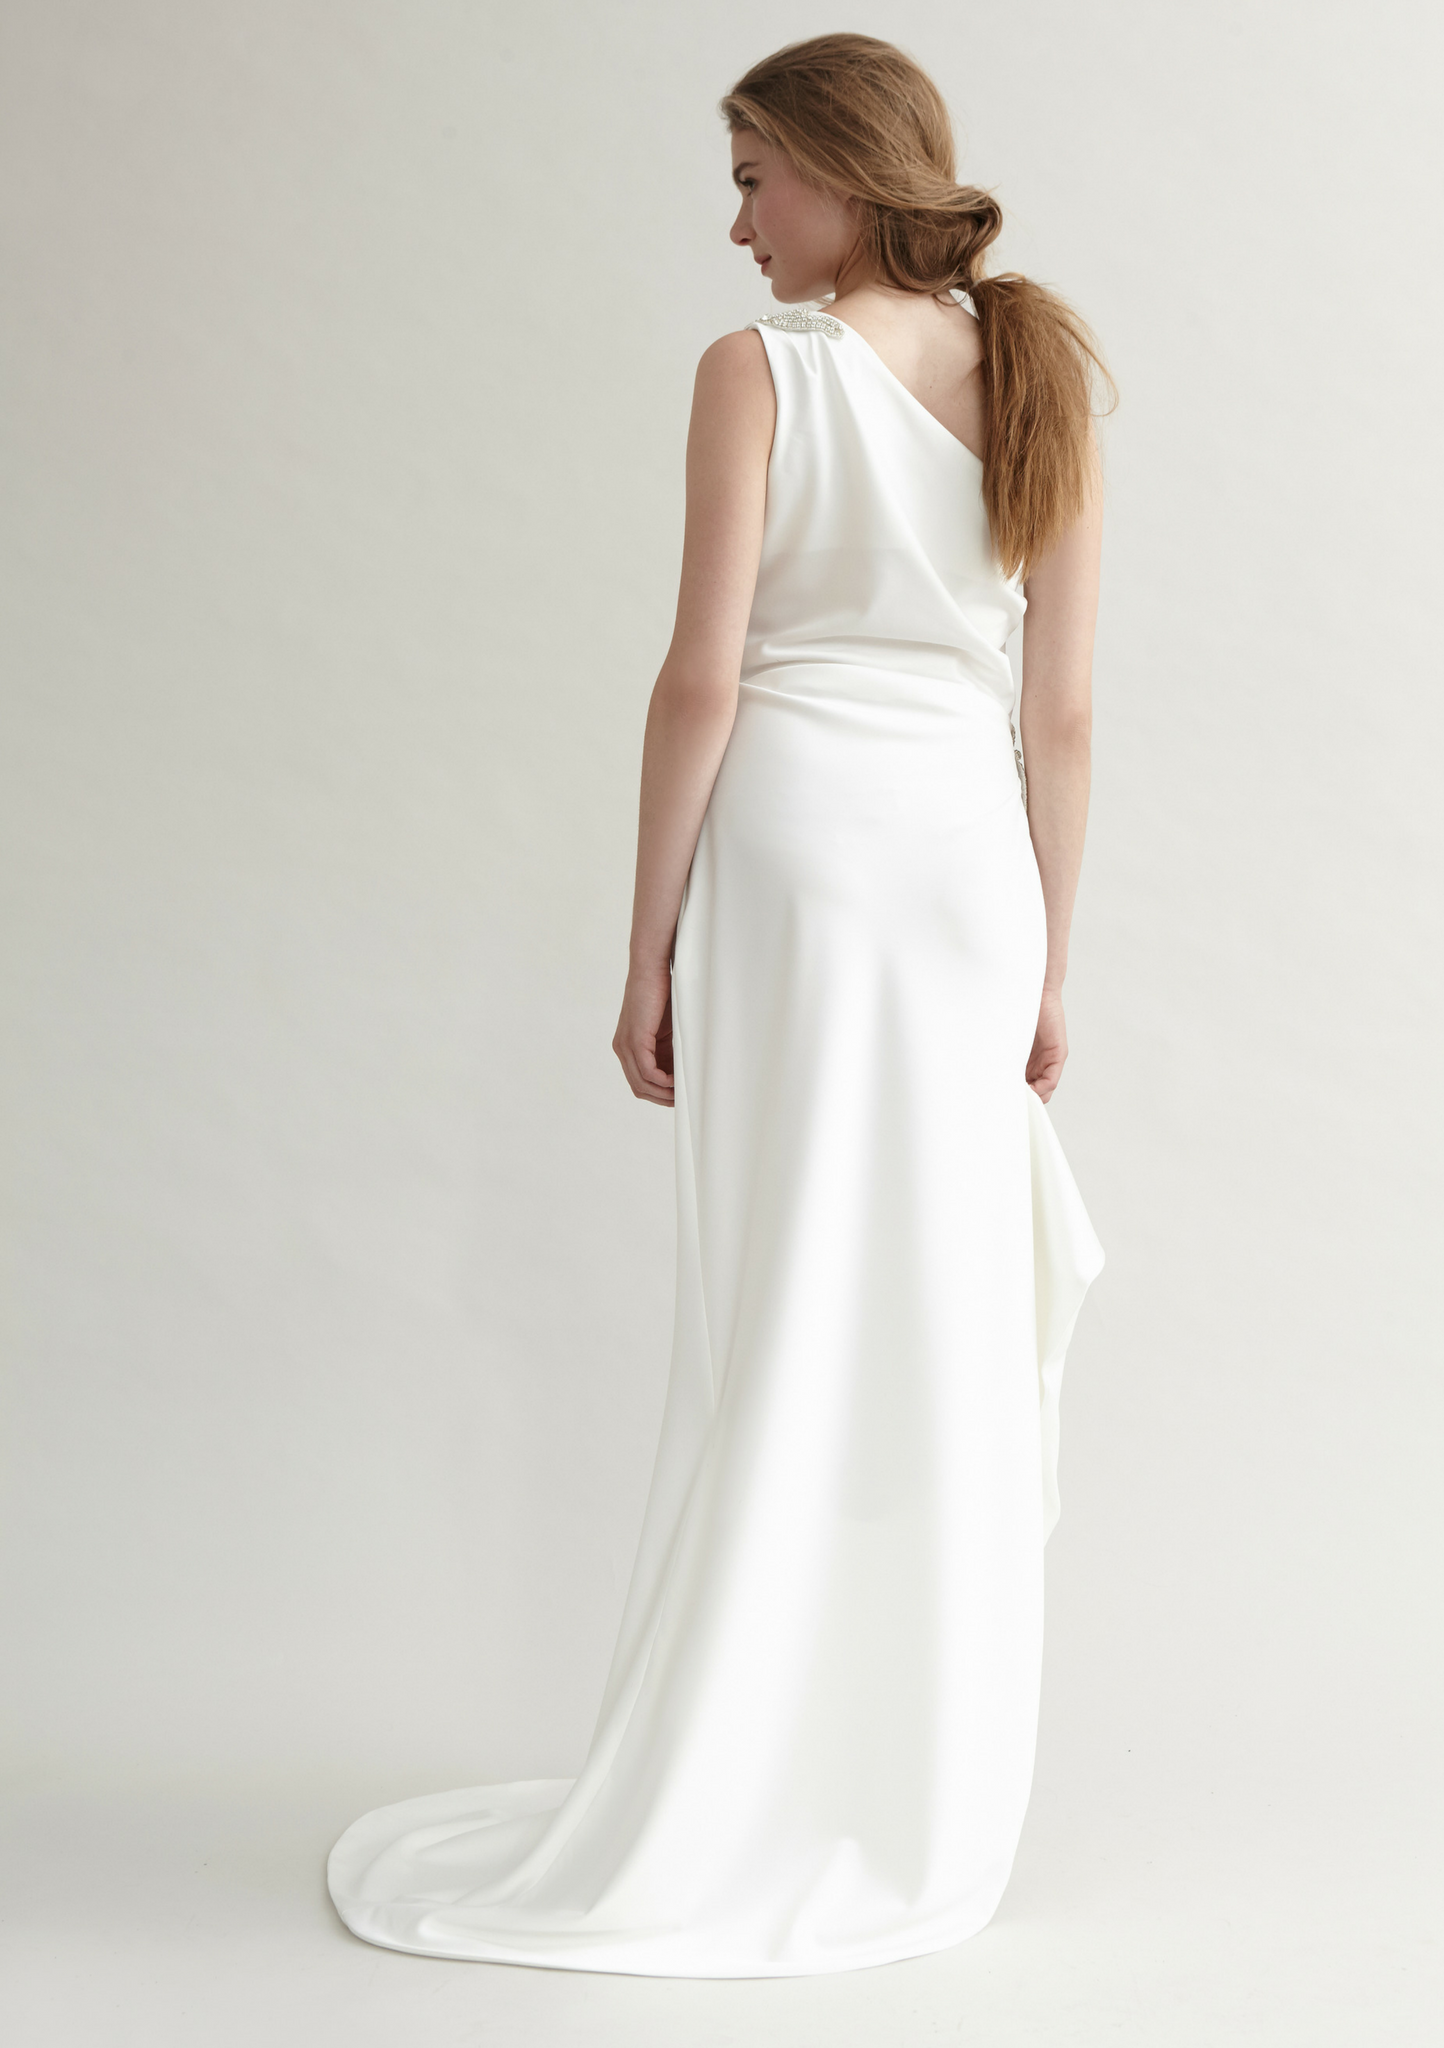 One shoulder, white bridal gown with a small train